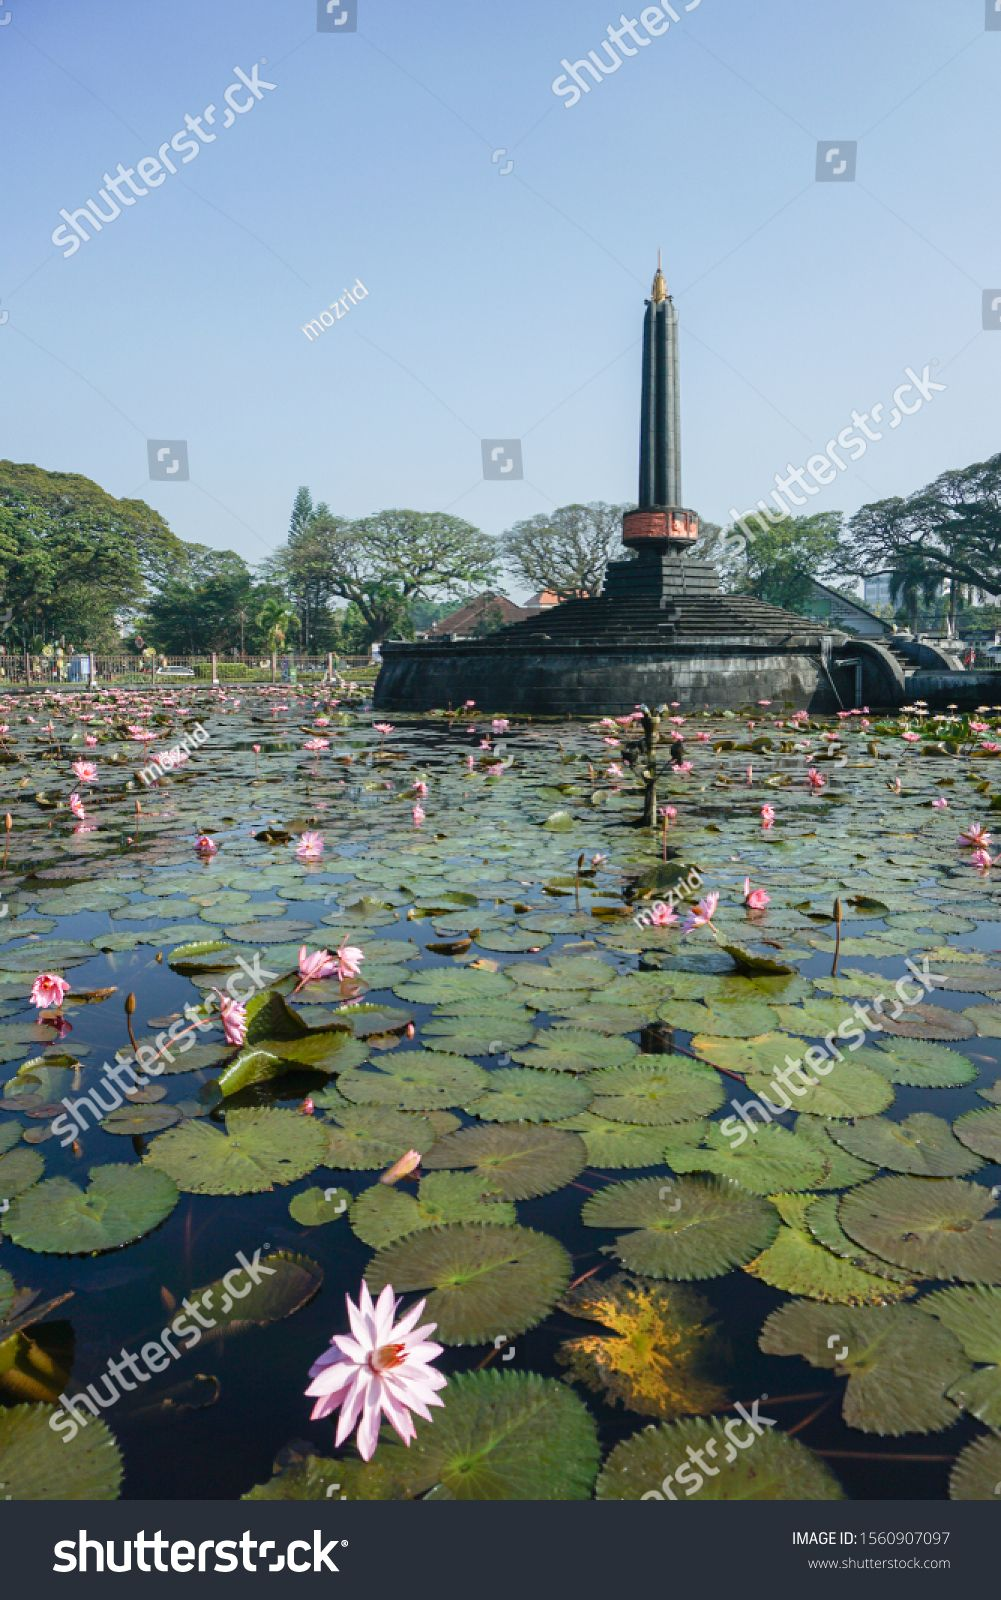 Malang Monument Landscape As The Main Landmark Of Malang City In East Java Indonesia Malang Indonesia December 21 2019 East Java Monument Stock Photos